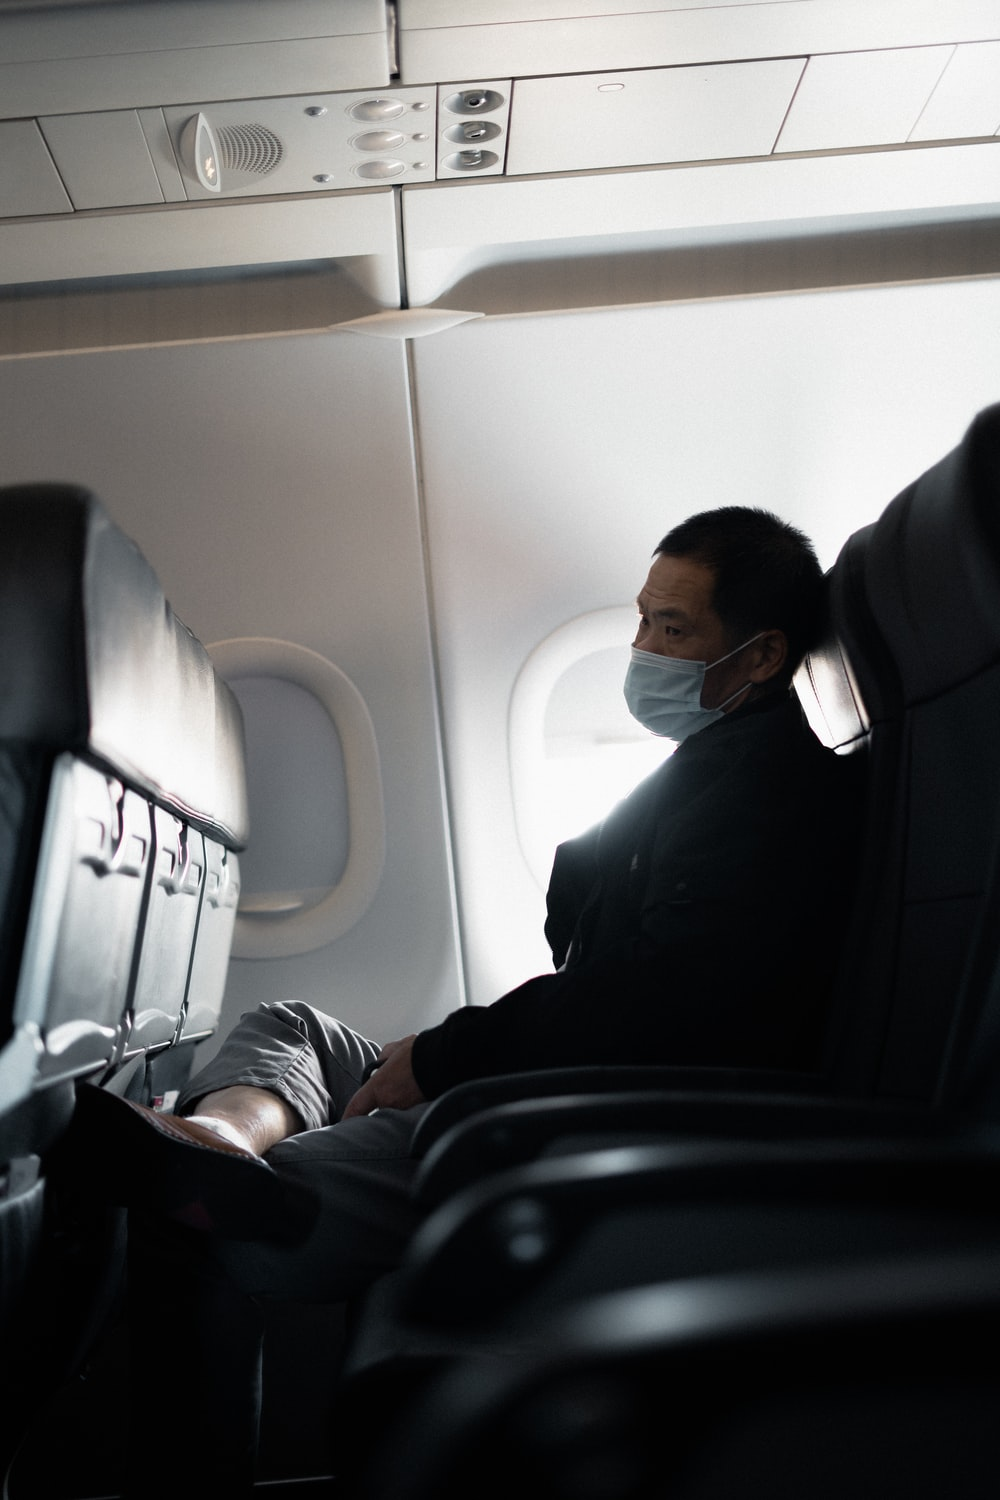 man in black suit sitting on airplane seat